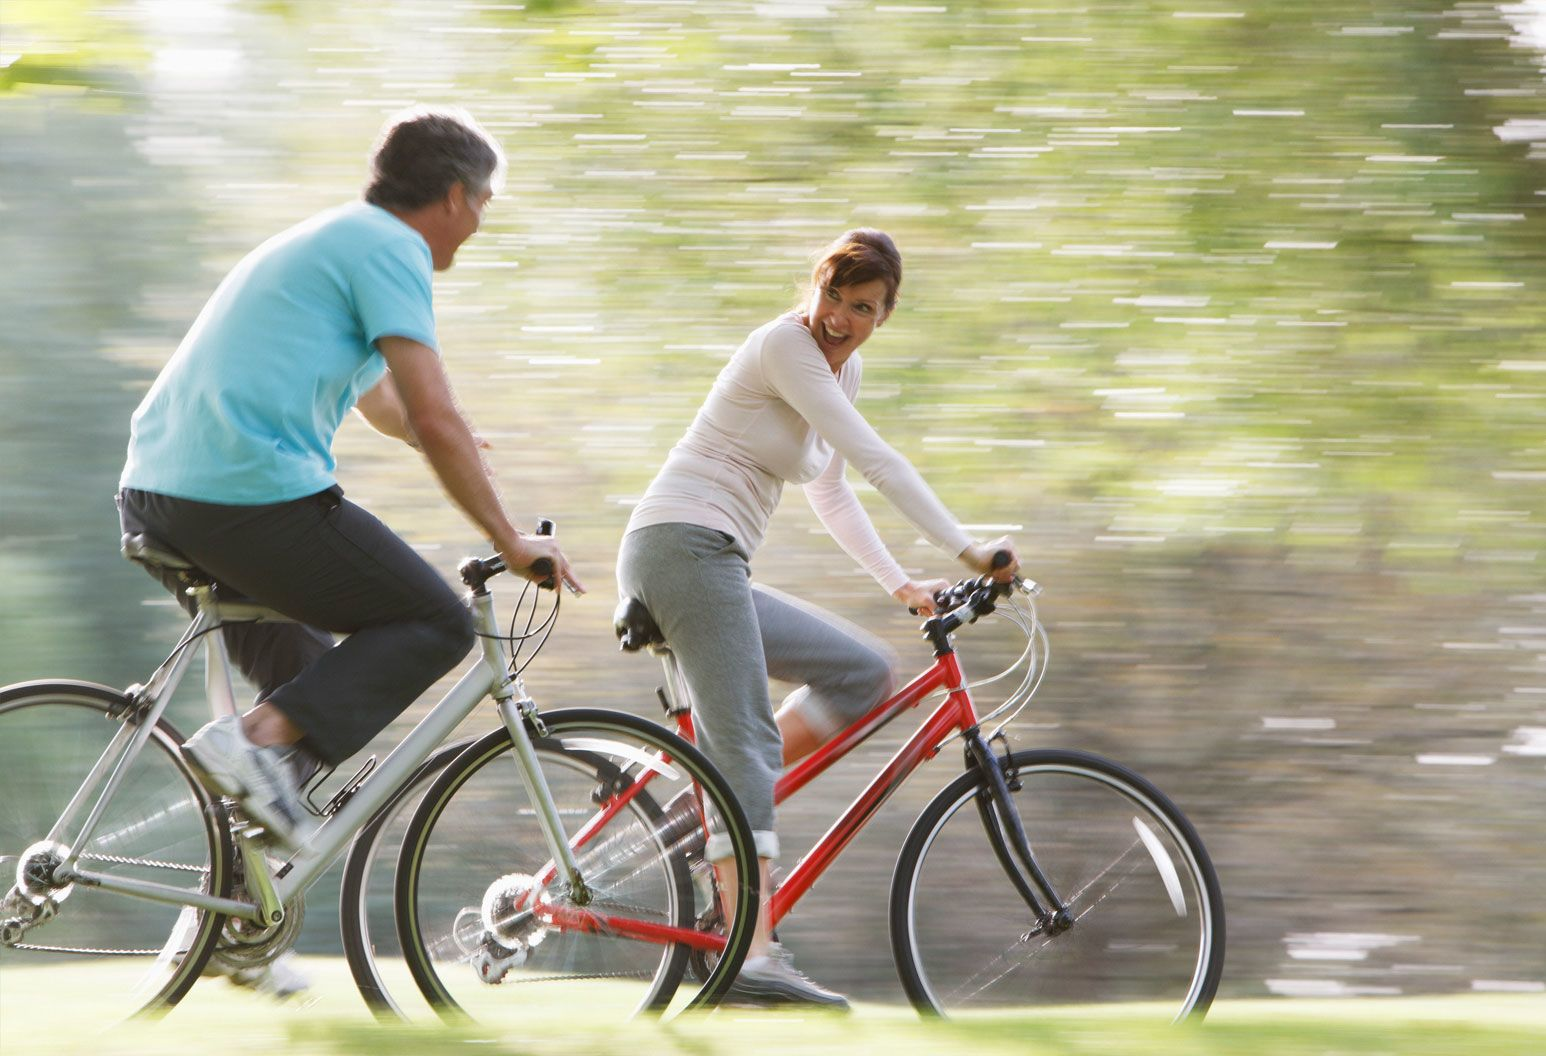 A middle-aged couple bikes together in a park. The woman is in front and looks back, playfully smiling at the man.